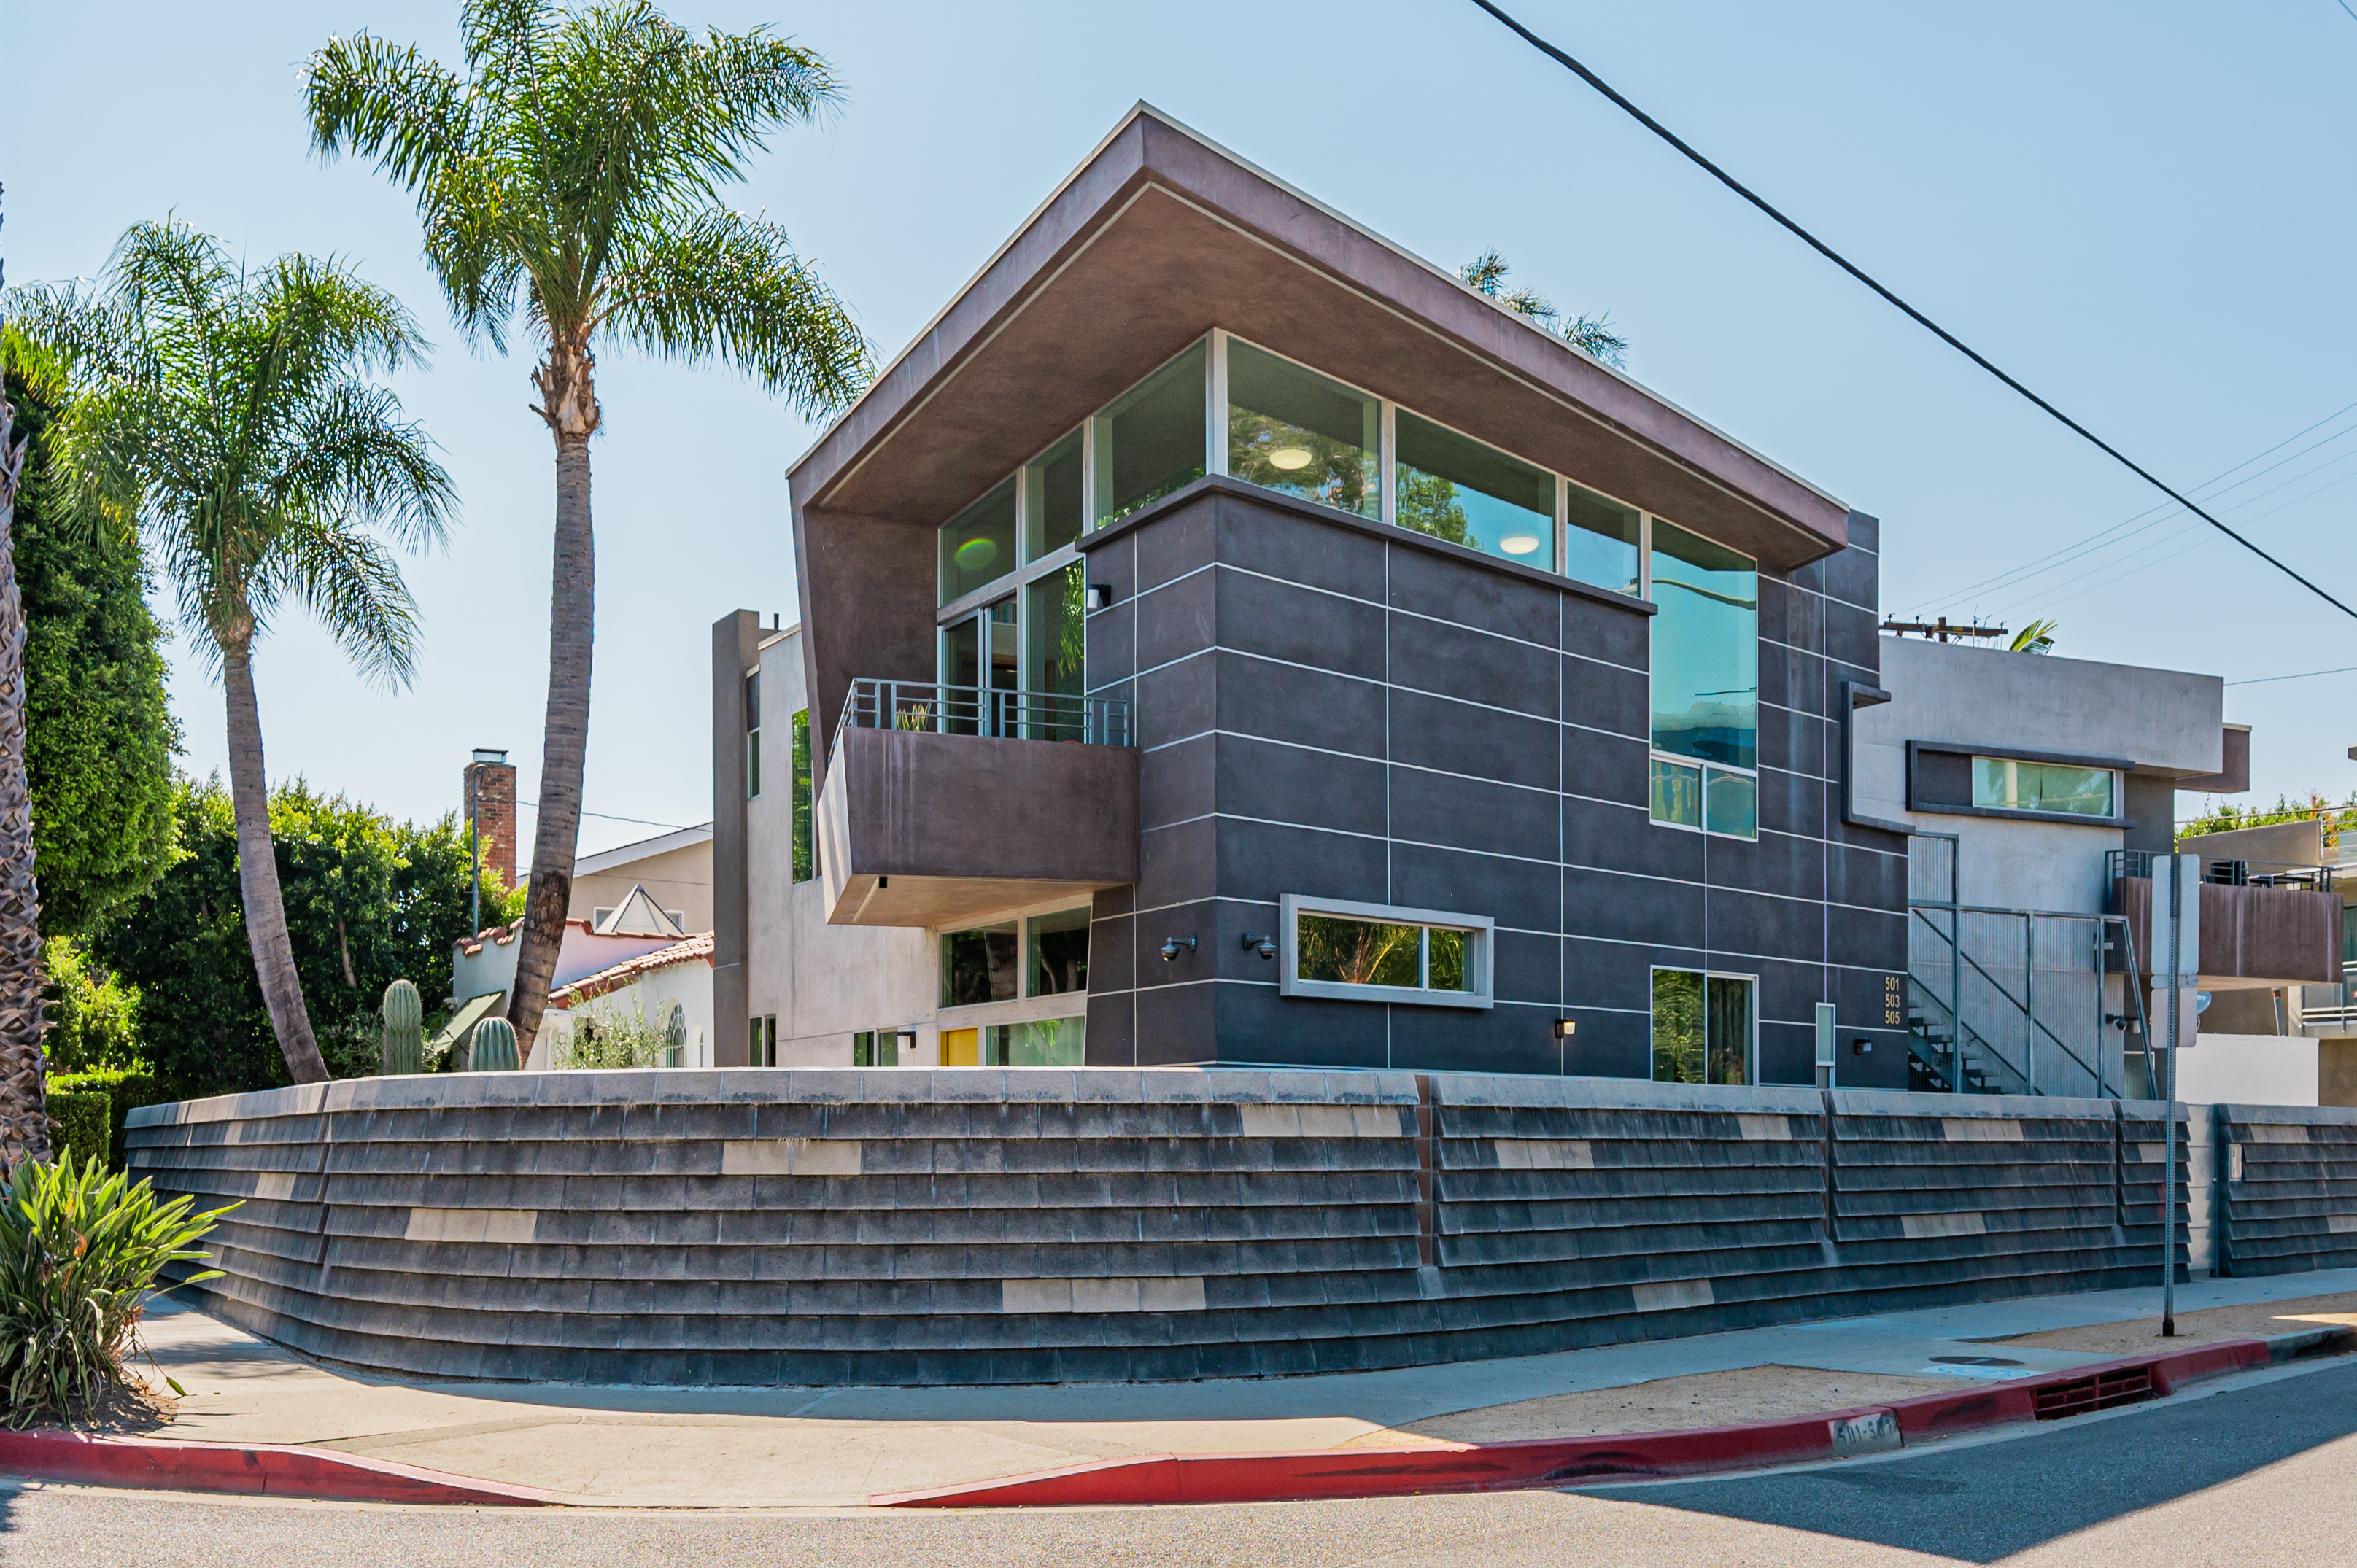 EXCLUSIVE LISTING | 2 Modern Buildings in the Heart of West Hollywood